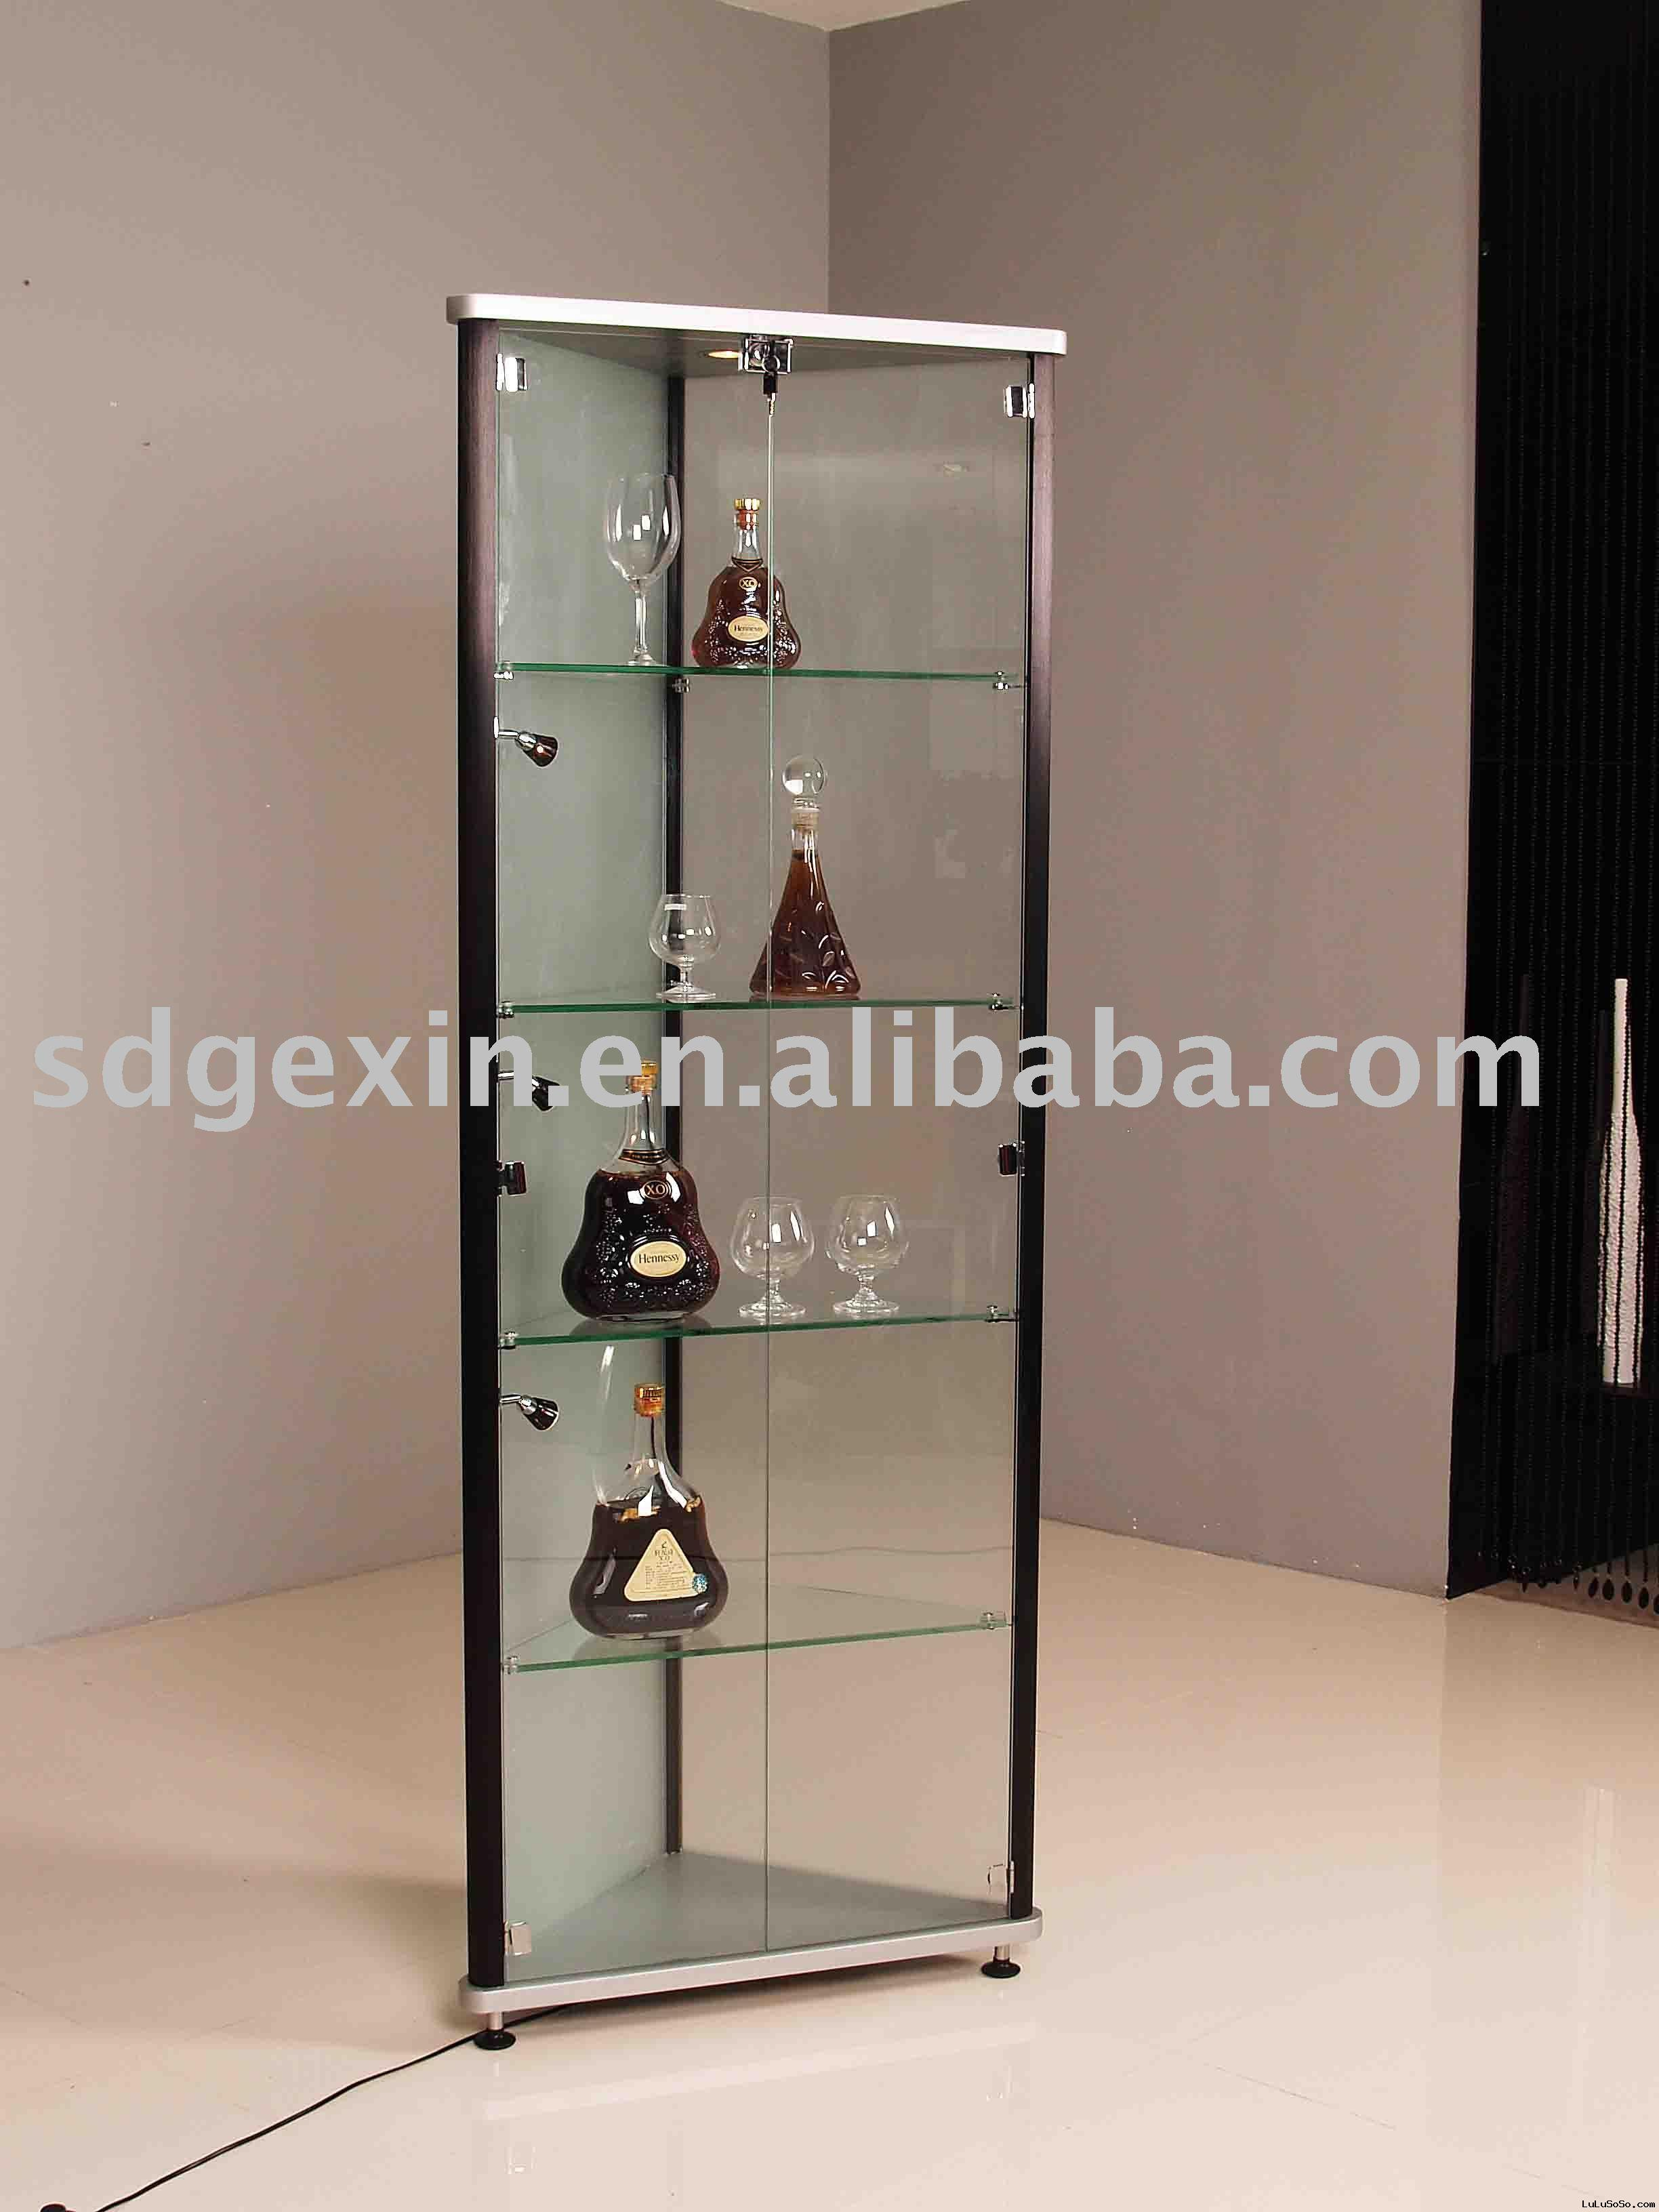 Decorative Wine Racks Cabinets - Compare Prices, Reviews and Buy